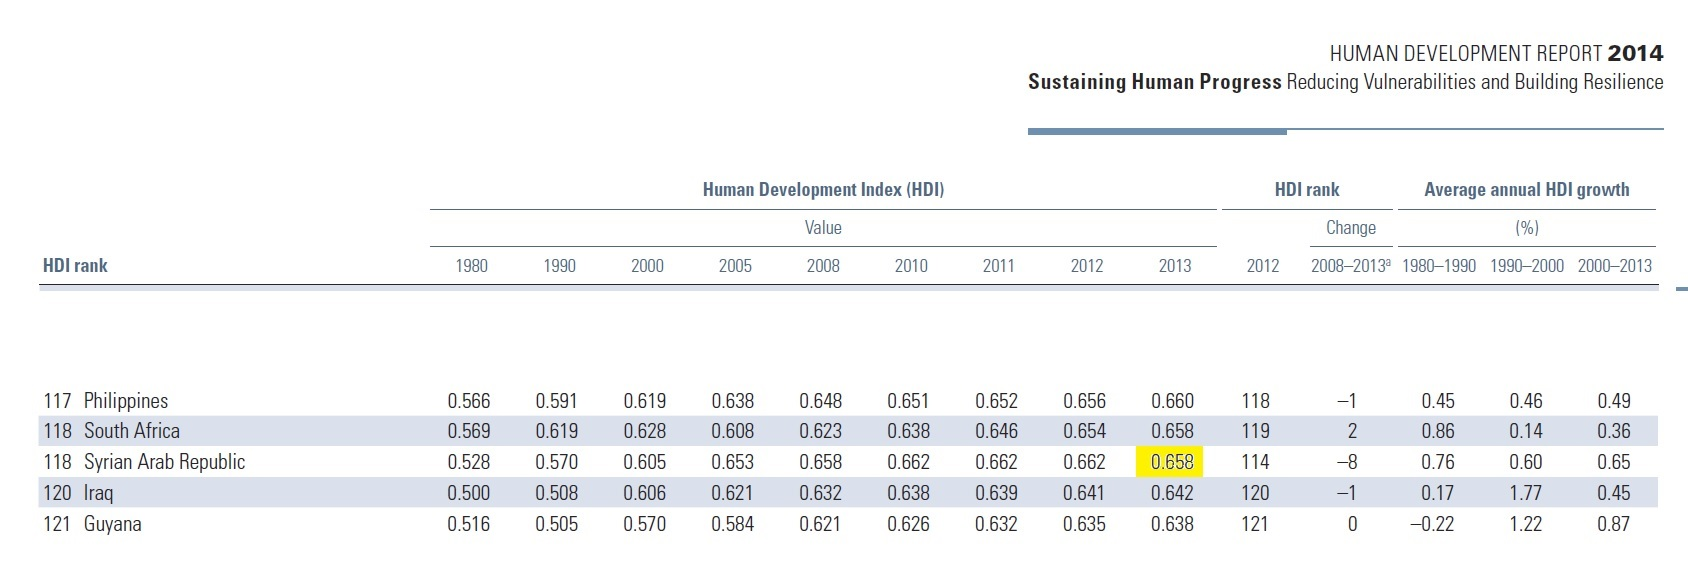 2014 Human Development Report, p. 165.